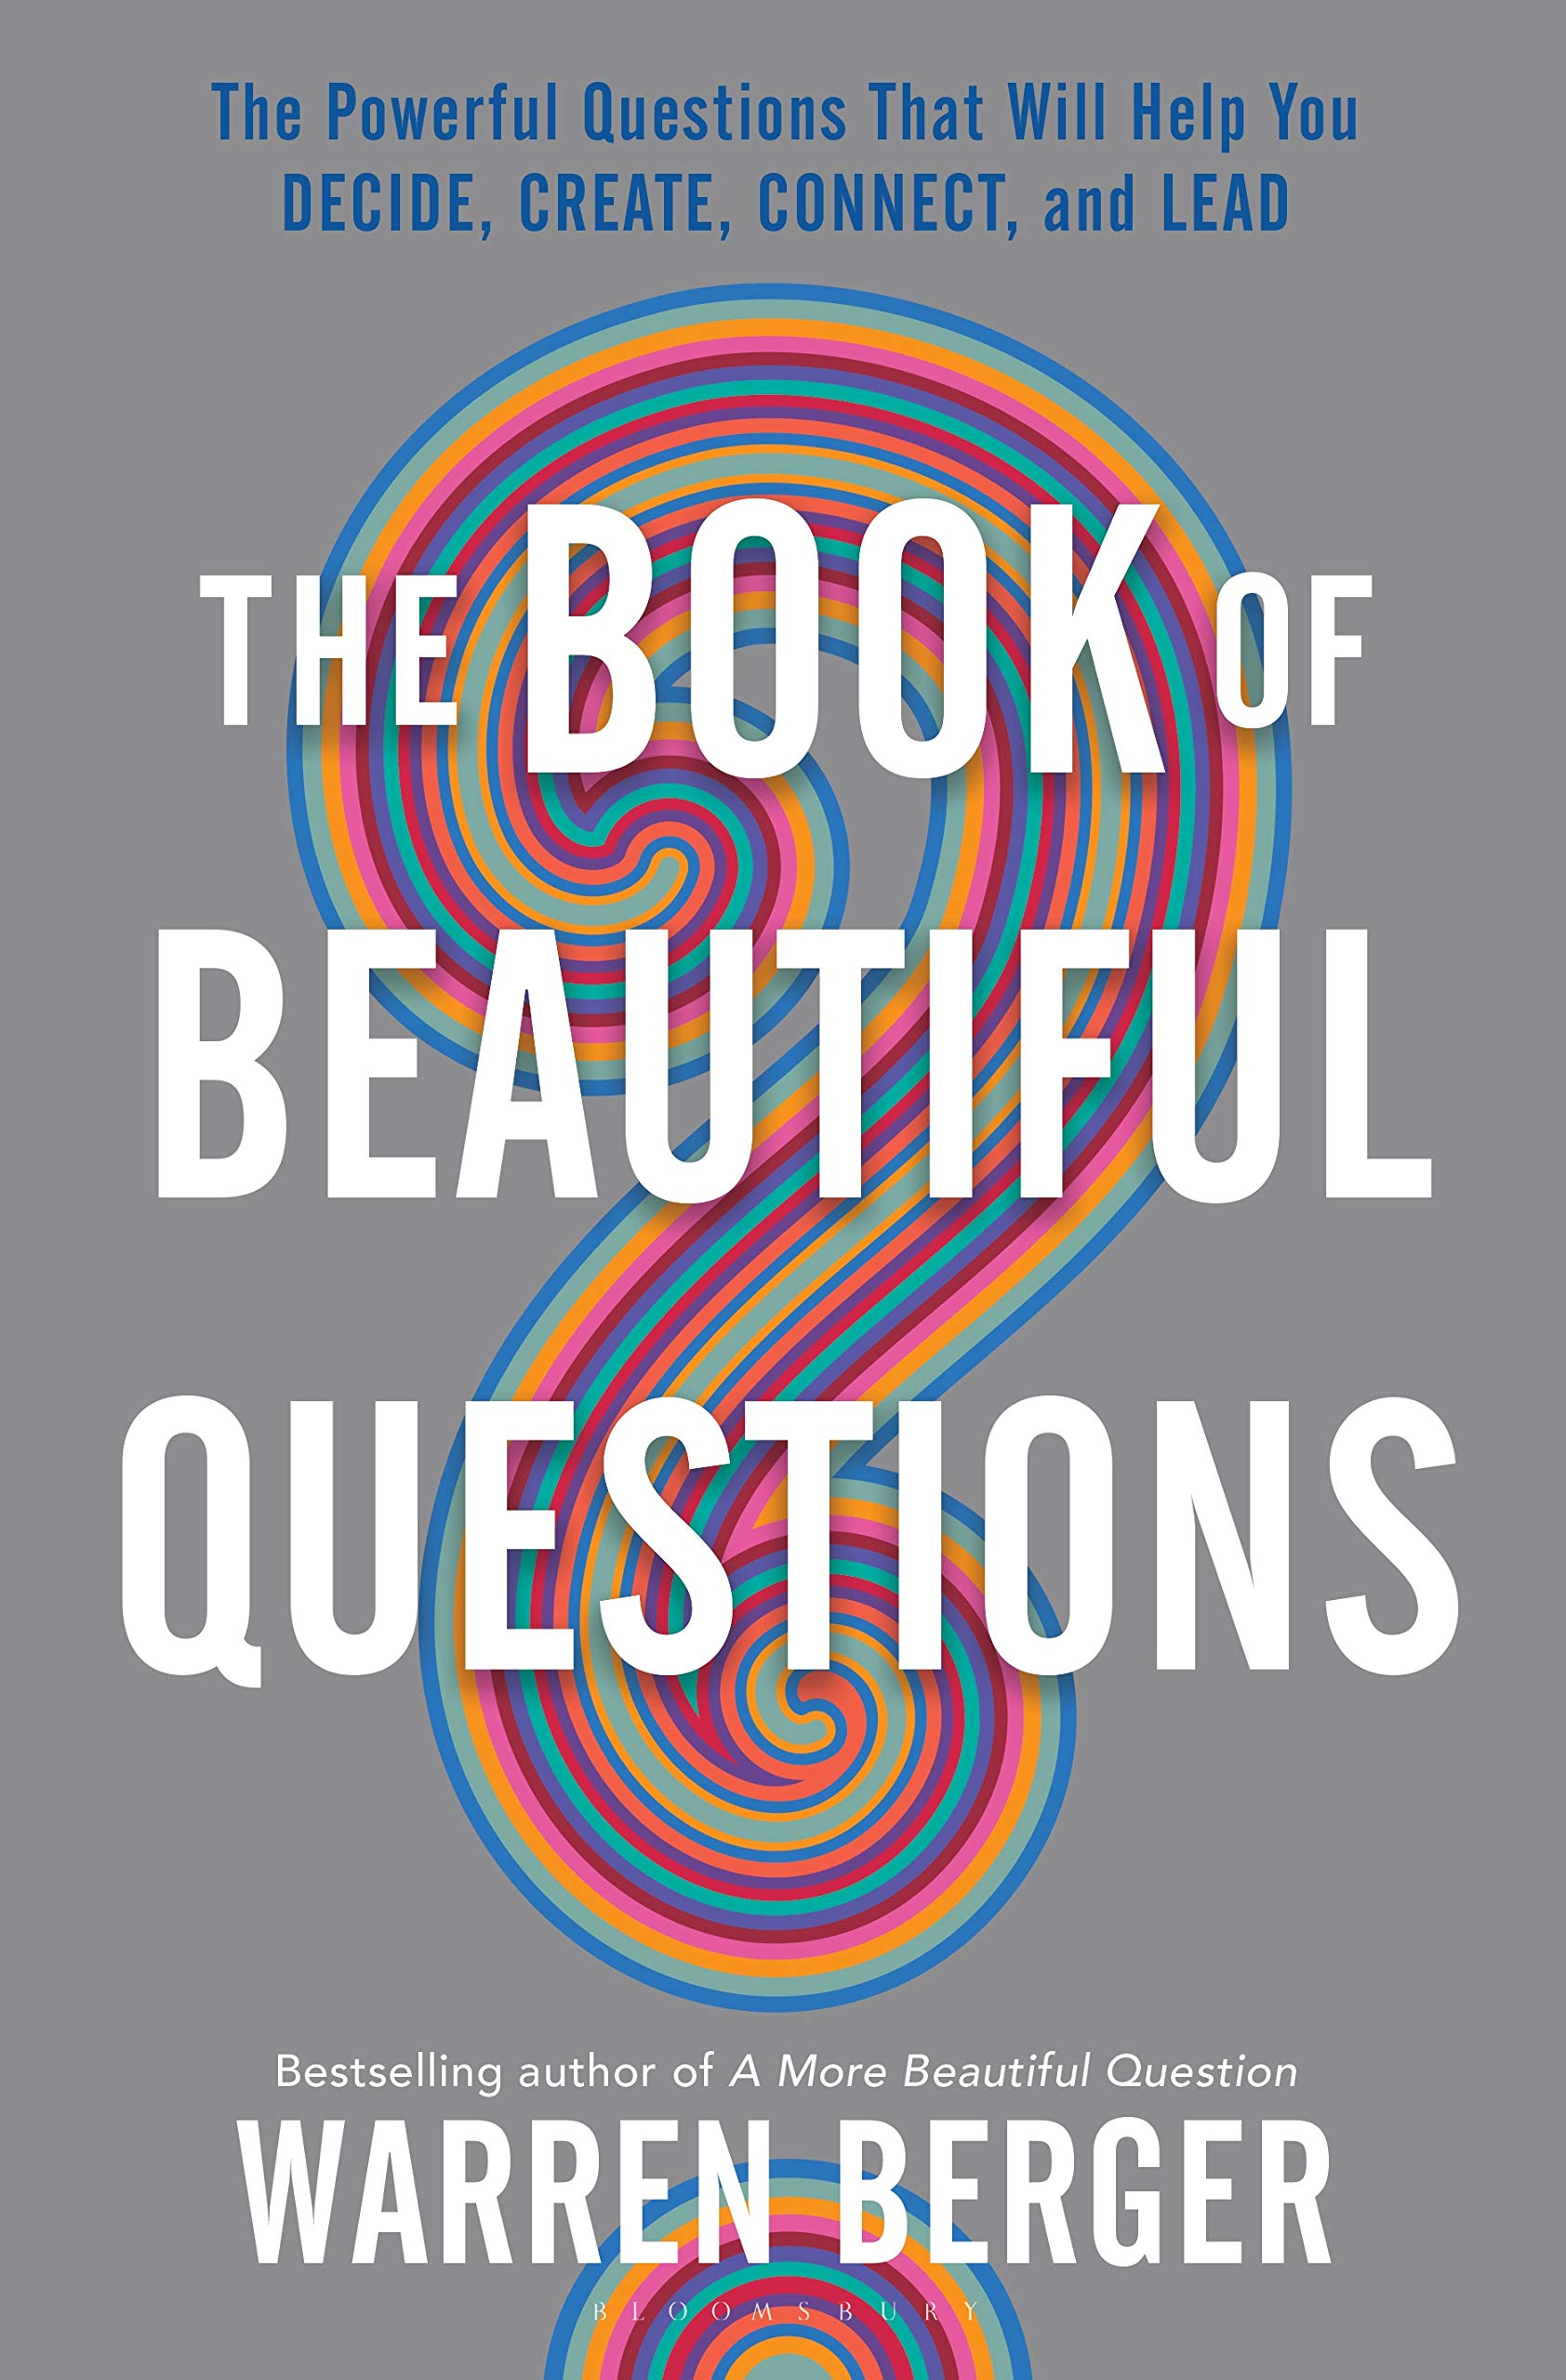 Image OfThe Book Of Beautiful Questions: The Powerful Questions That Will Help You Decide, Create, Connect, And Lead